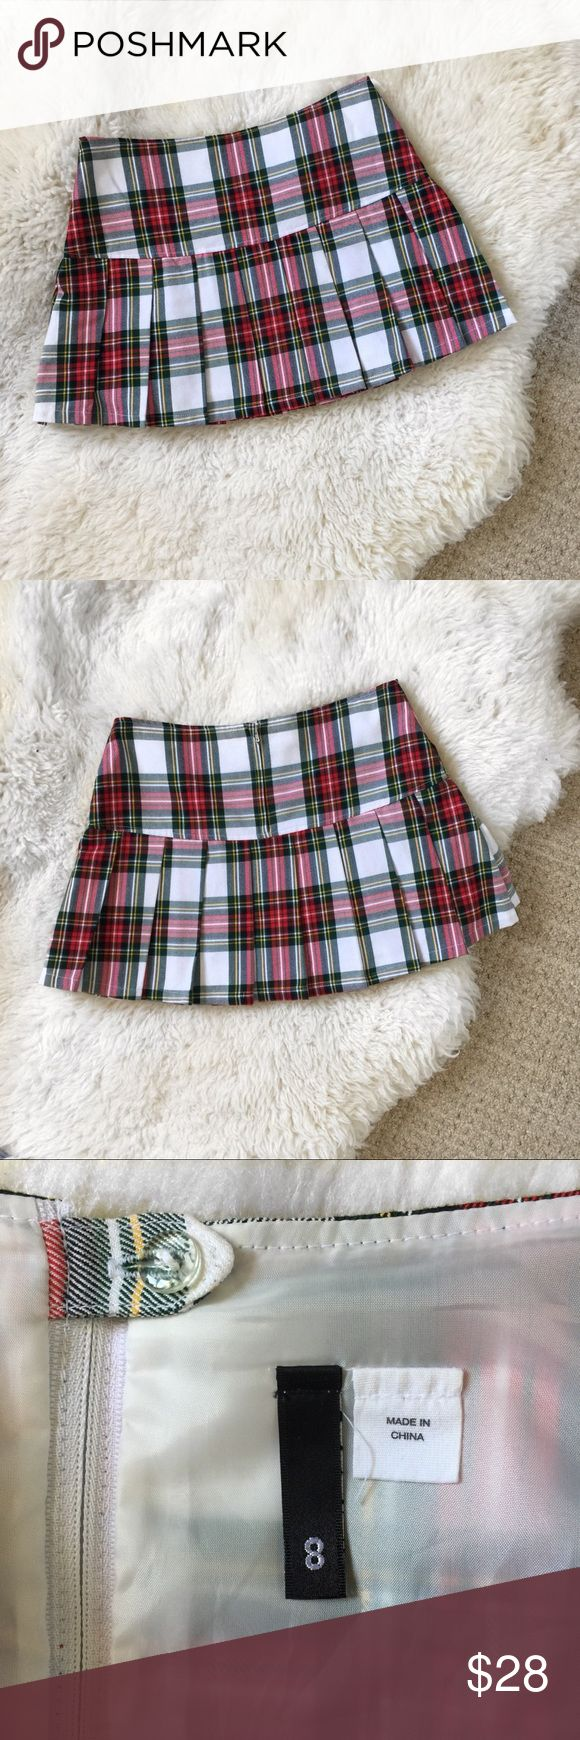 H&M Plaid Schoolgirl Skirt Size 8 H&M Red & White Pleated Plaid Skirt. School girl style. Poly-Rayon Blend. Size 8. Worn once for a costume. Perfect for dress up or cosplay. H&M Skirts Mini